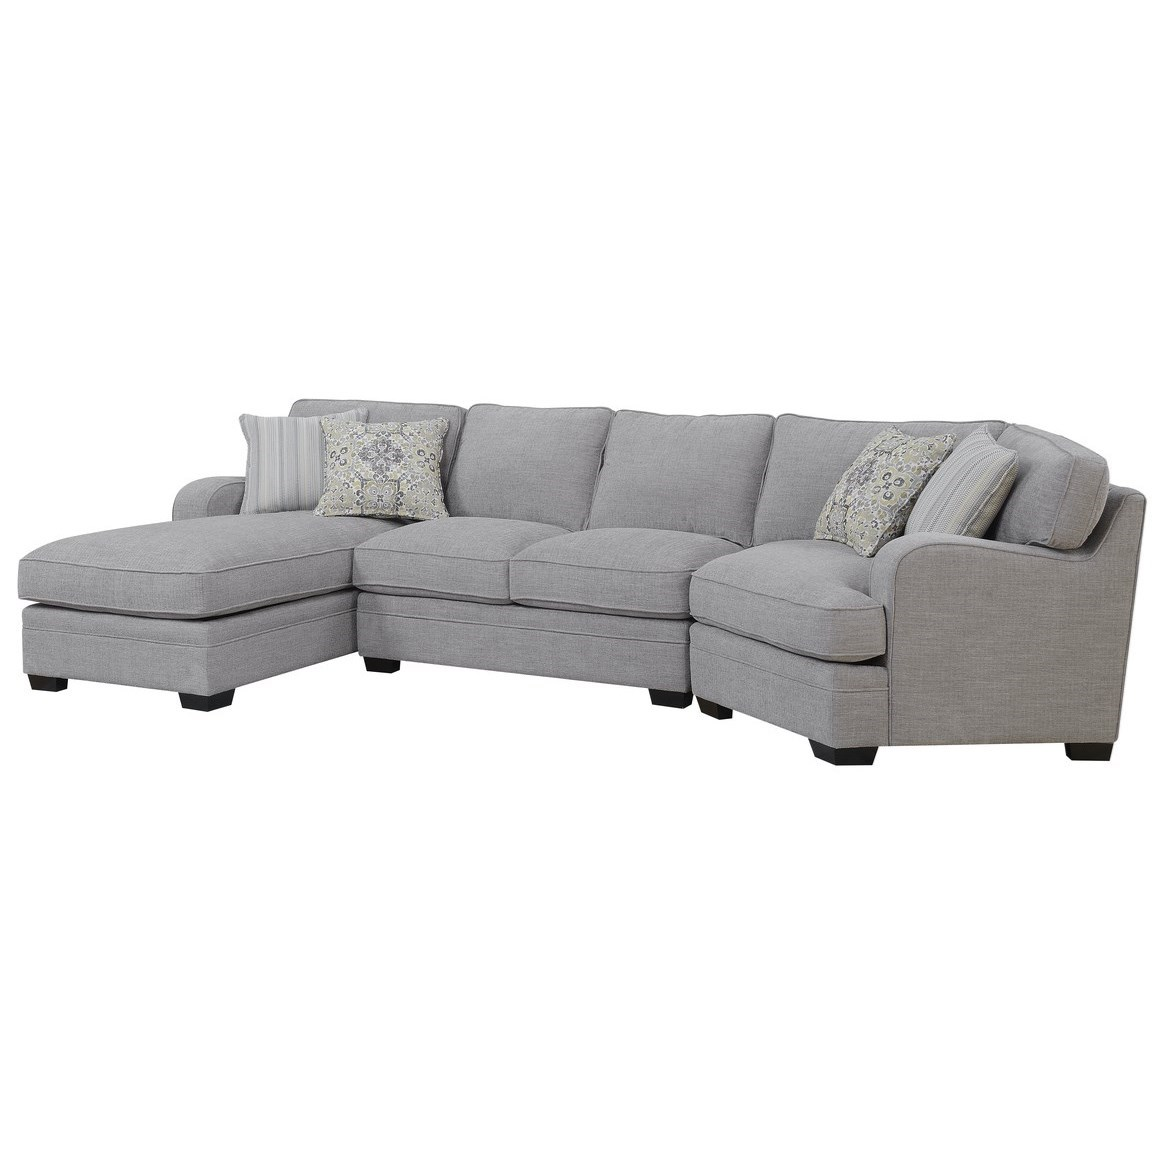 Analiese Sectional Sofa with Chaise by Emerald at Northeast Factory Direct